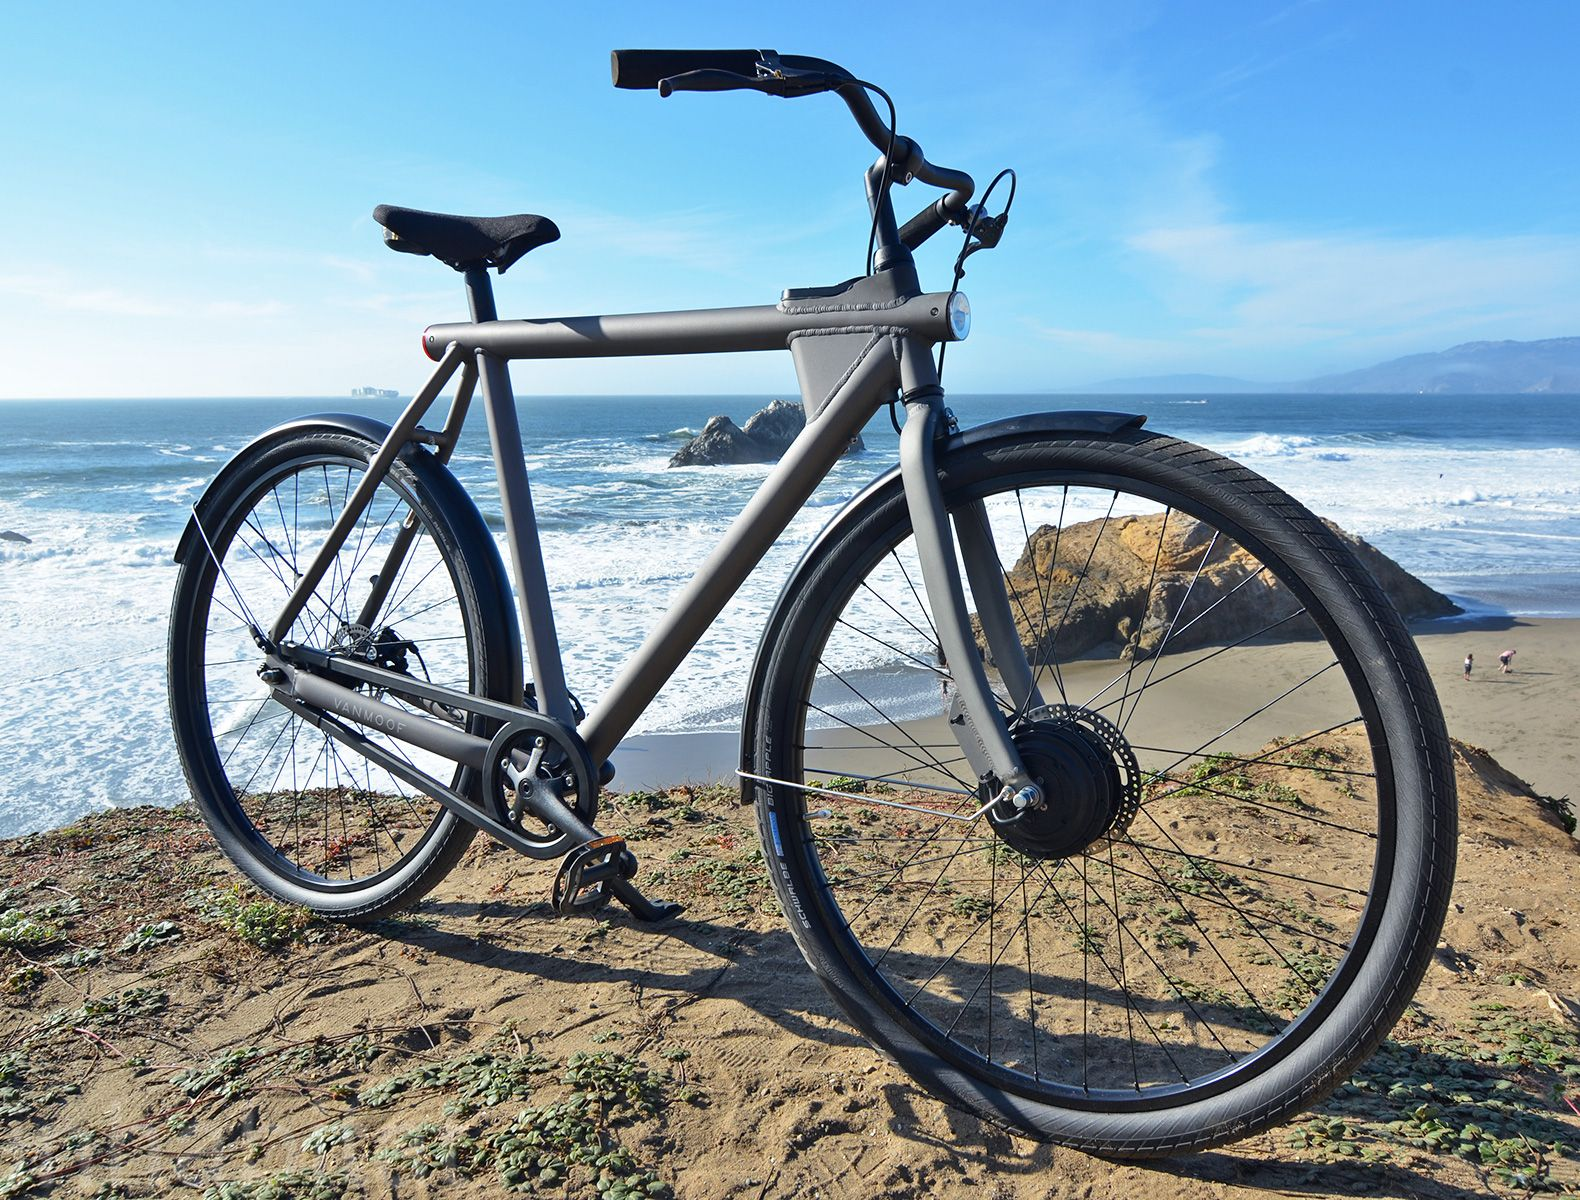 The Vanmoof Electrified Is A Smart Stylish And Stealthy Electric